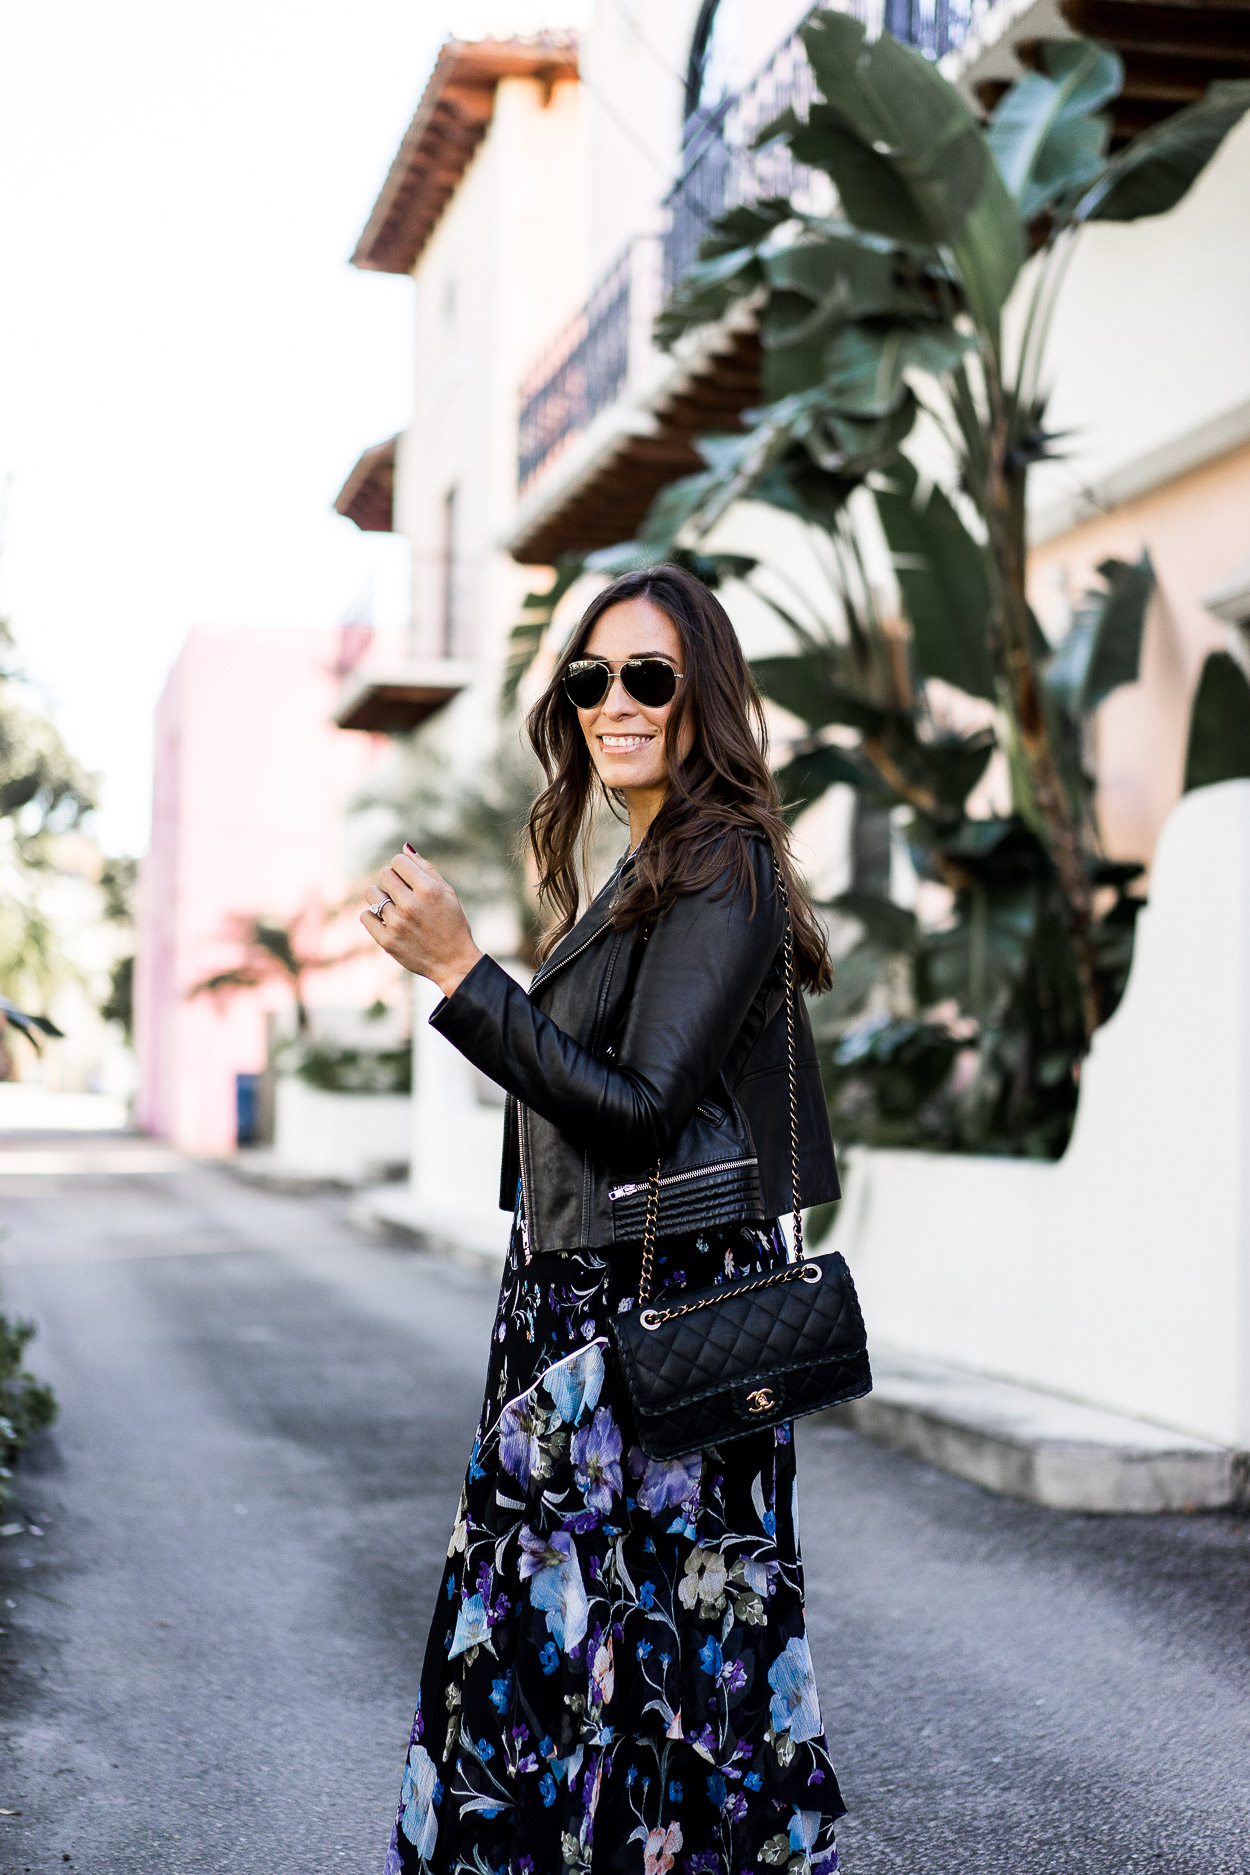 The best brunch outfits include this 3.1 Phillip Lim floral dress styled by A Glam Lifestyle blogger